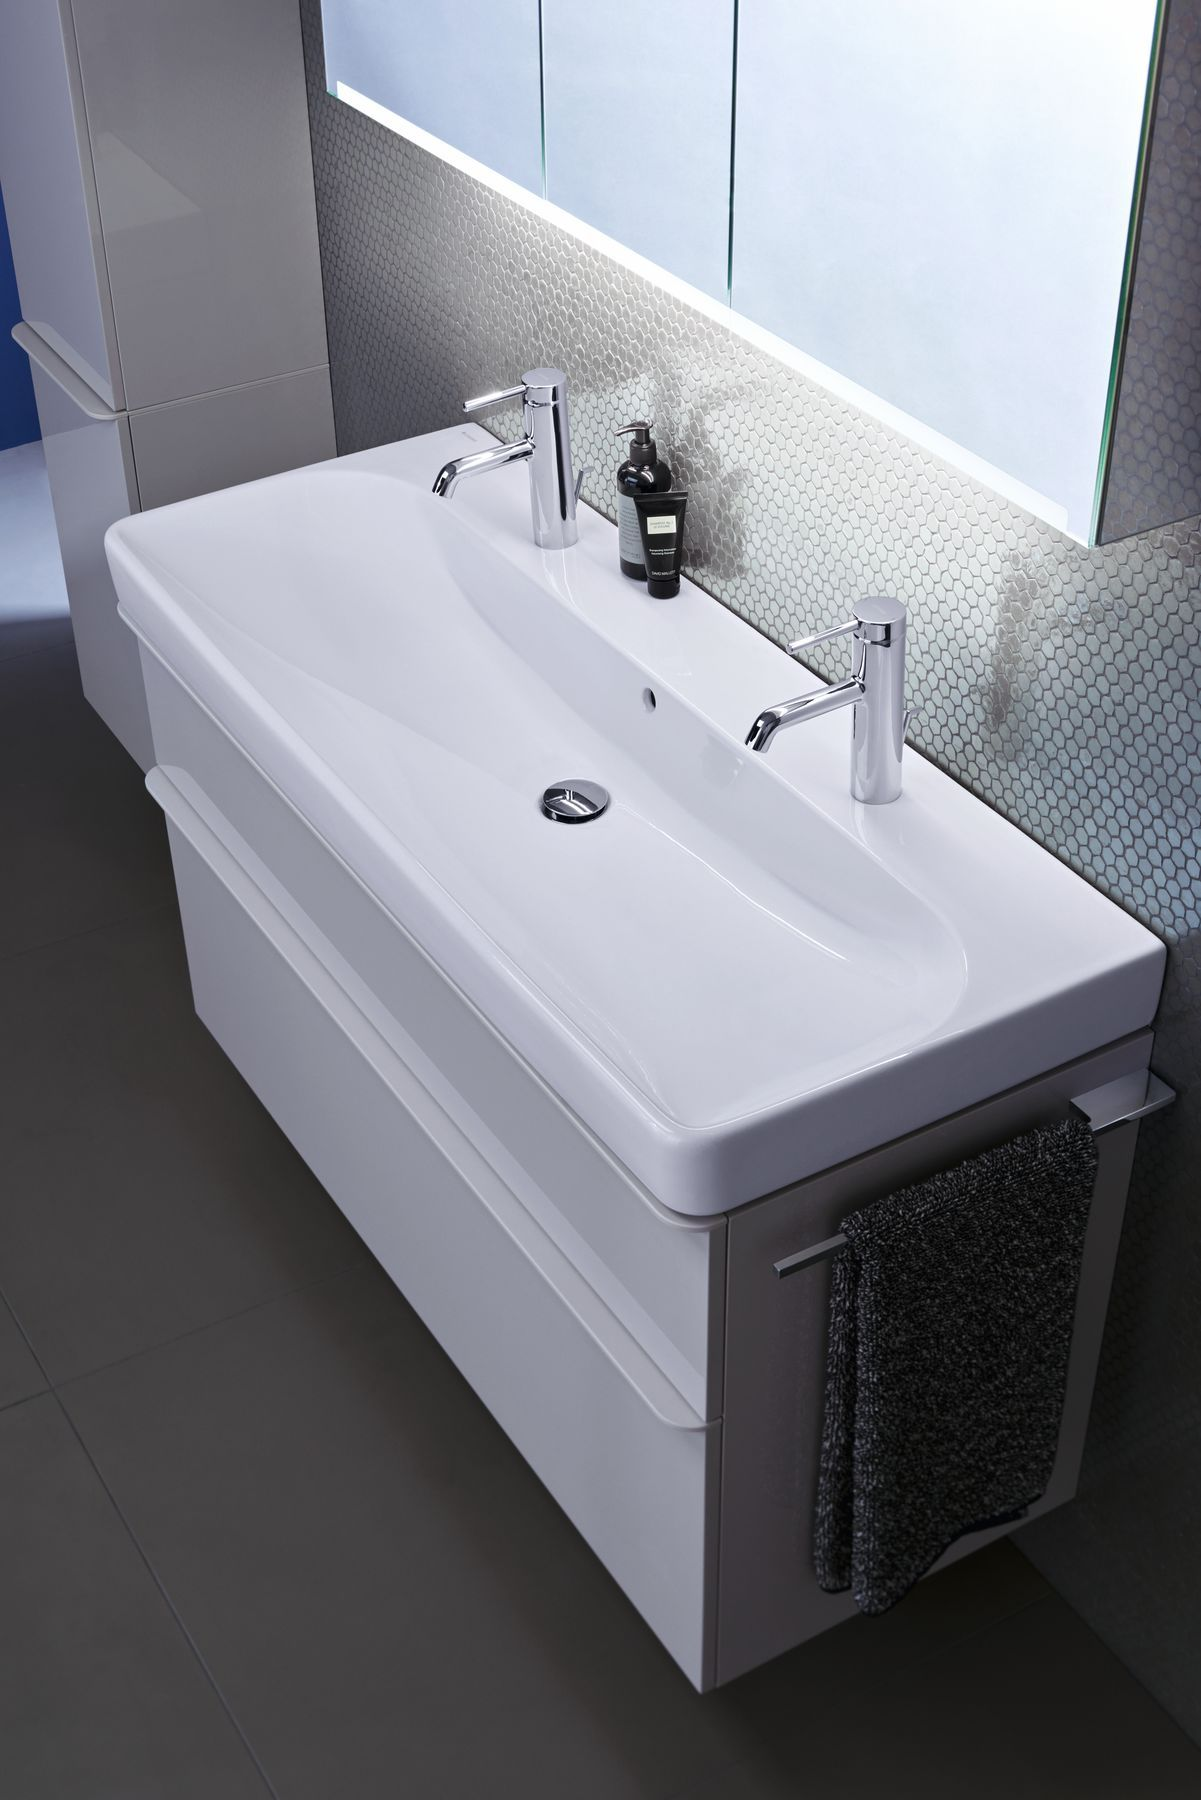 Creating A Minimalist Aesthetic In The Bathroom Makes For The